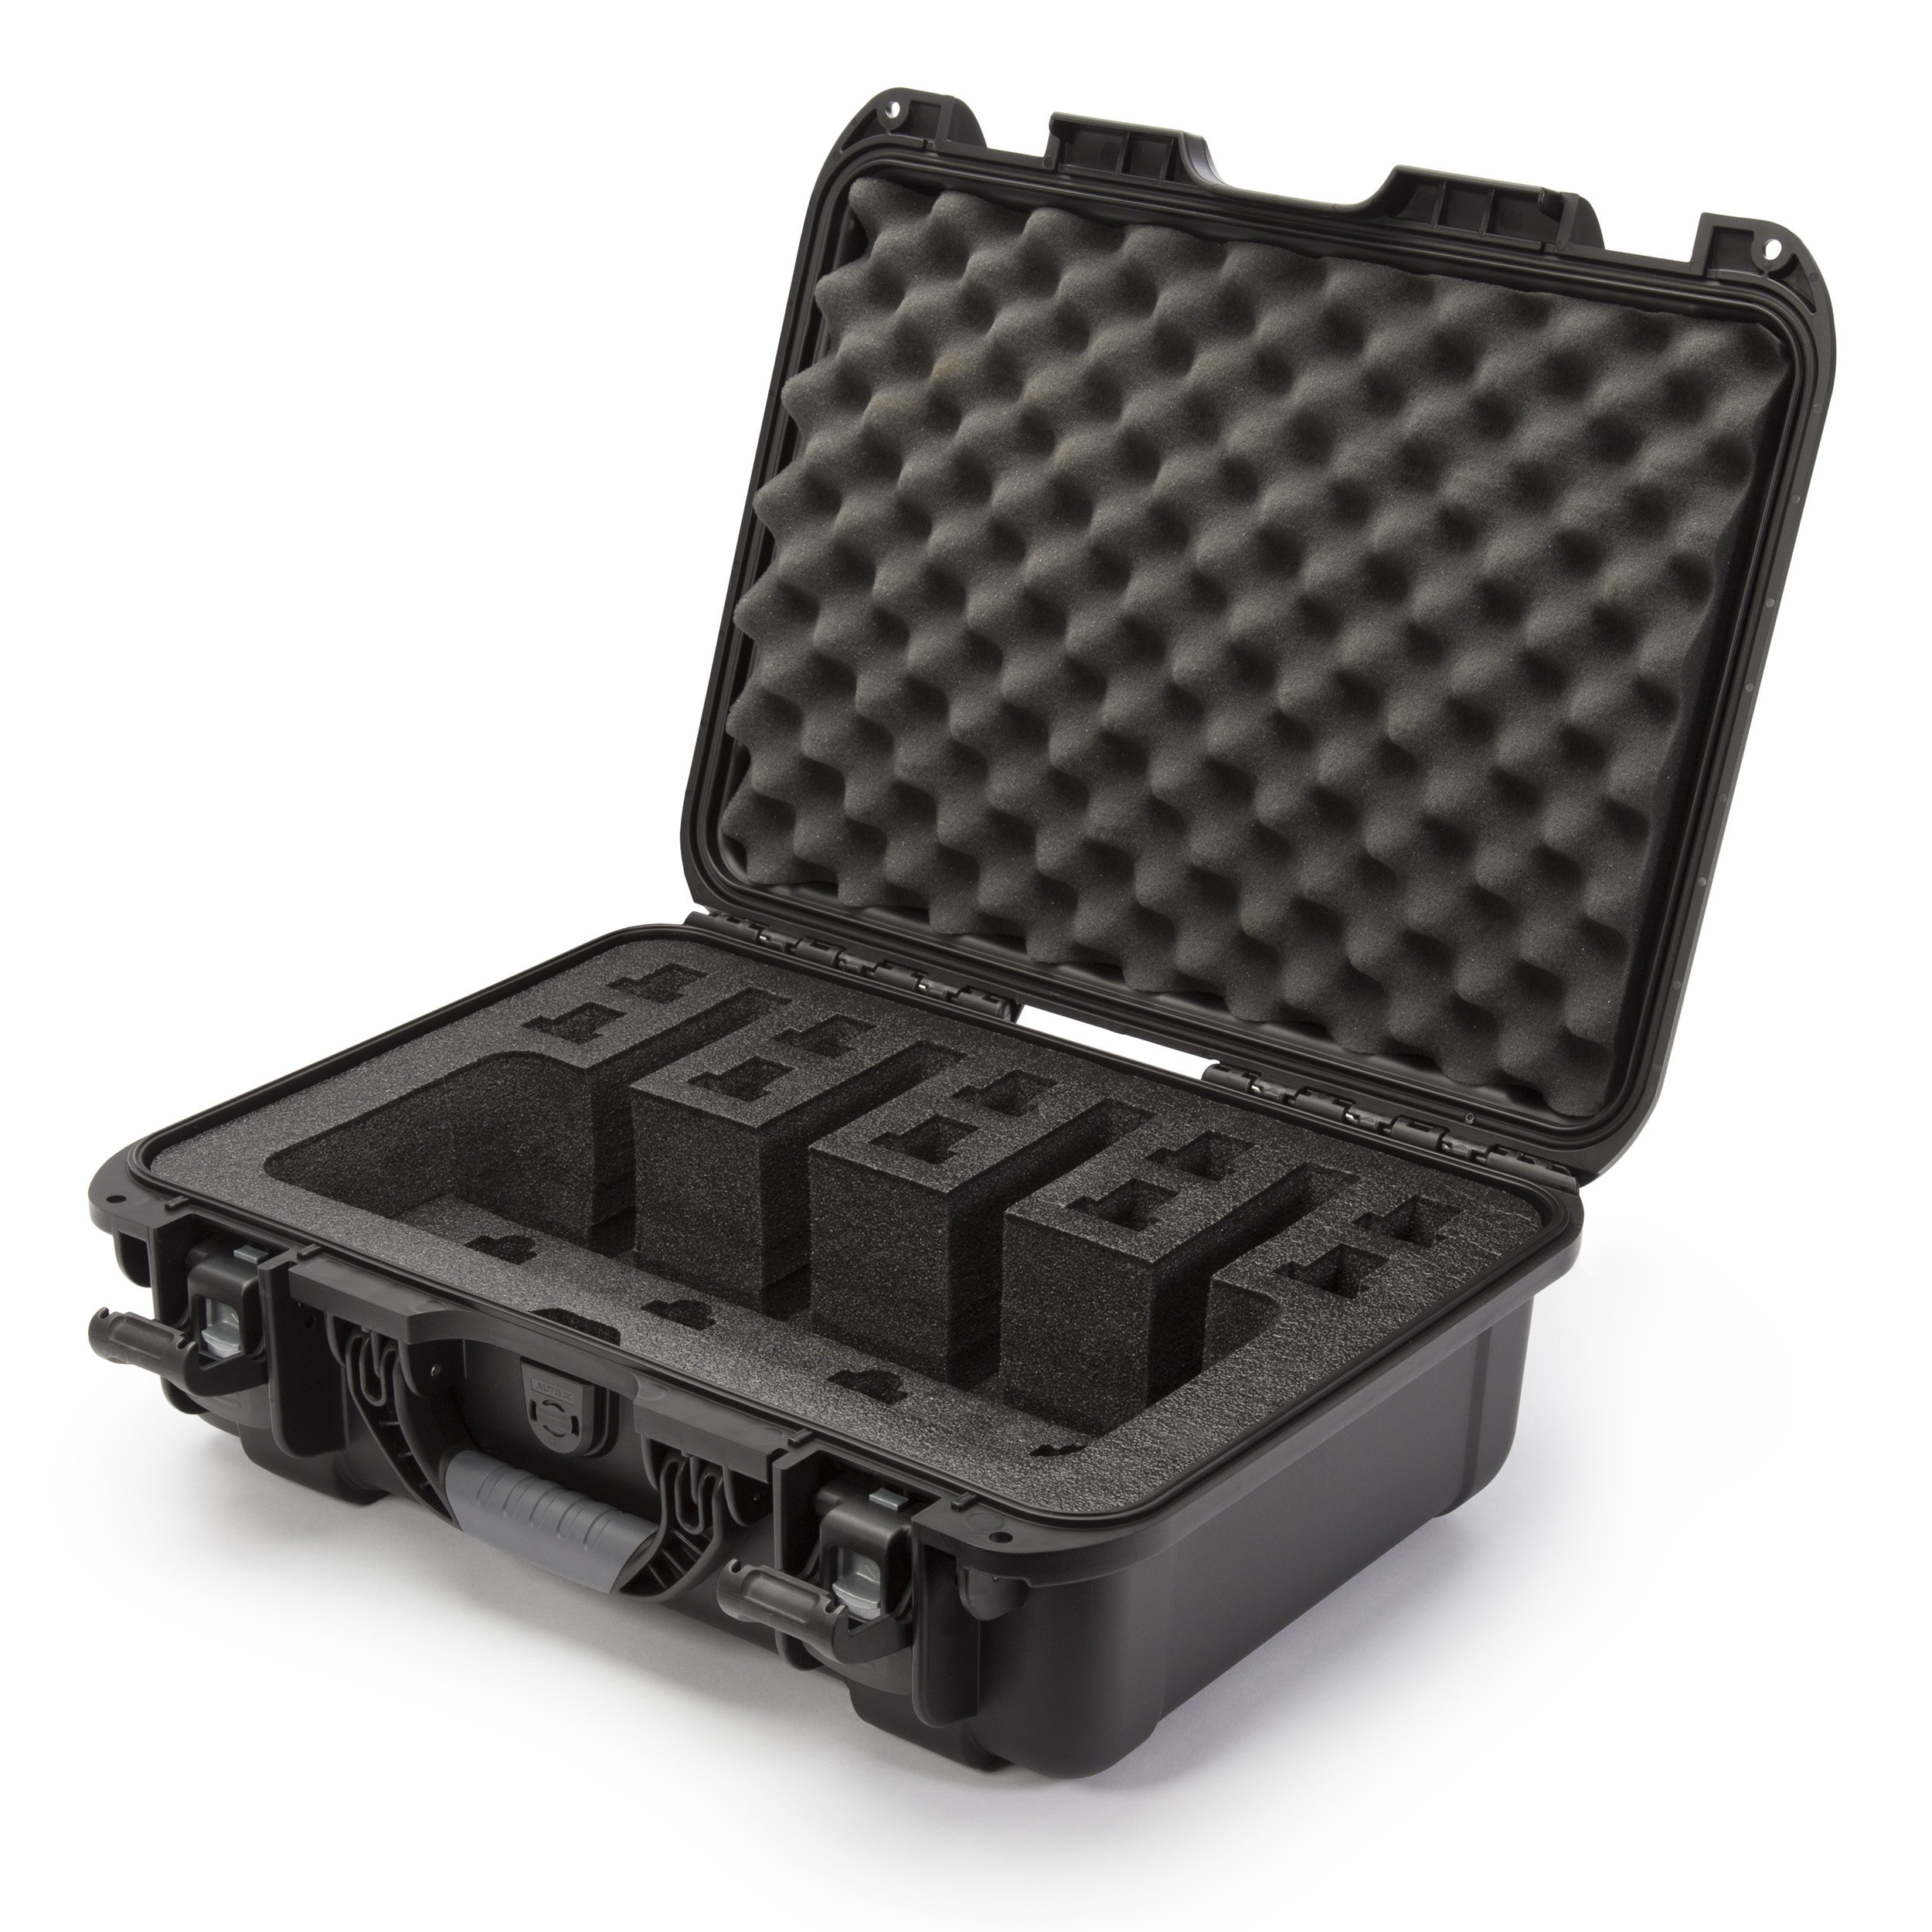 Nanuk 925 Waterproof Professional Gun Case, Military Approved with Custom Foam Insert for 4UP - Black by Nanuk